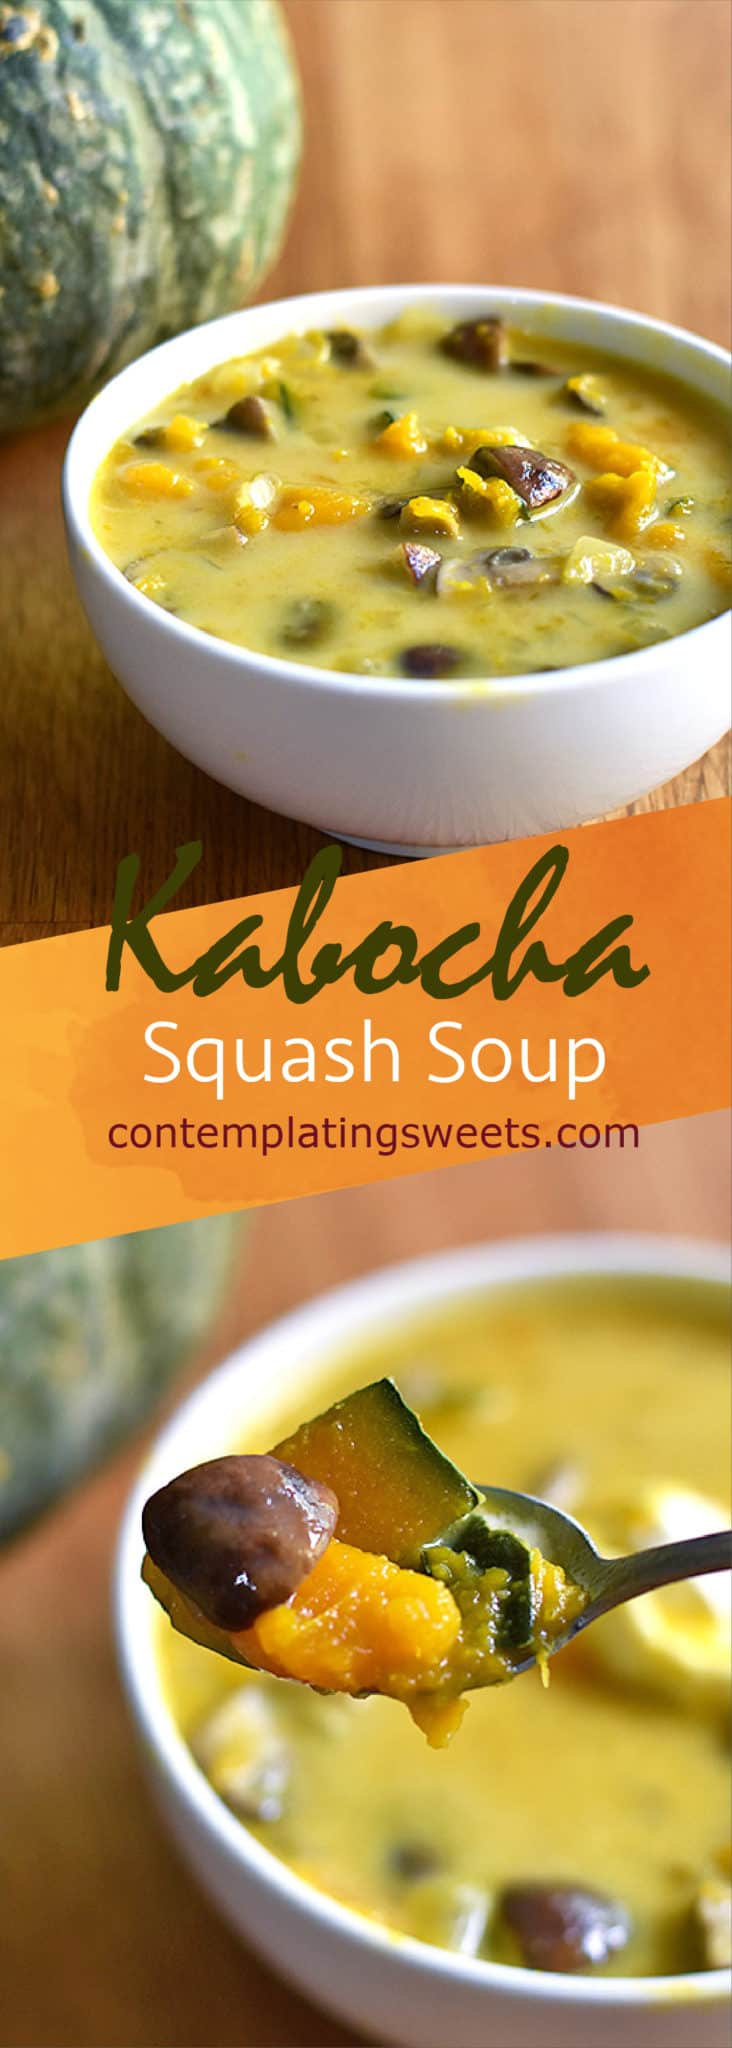 This kabocha squash soup is naturally sweet, and uses just a few simple ingredients to make a comforting and delicious winter soup.